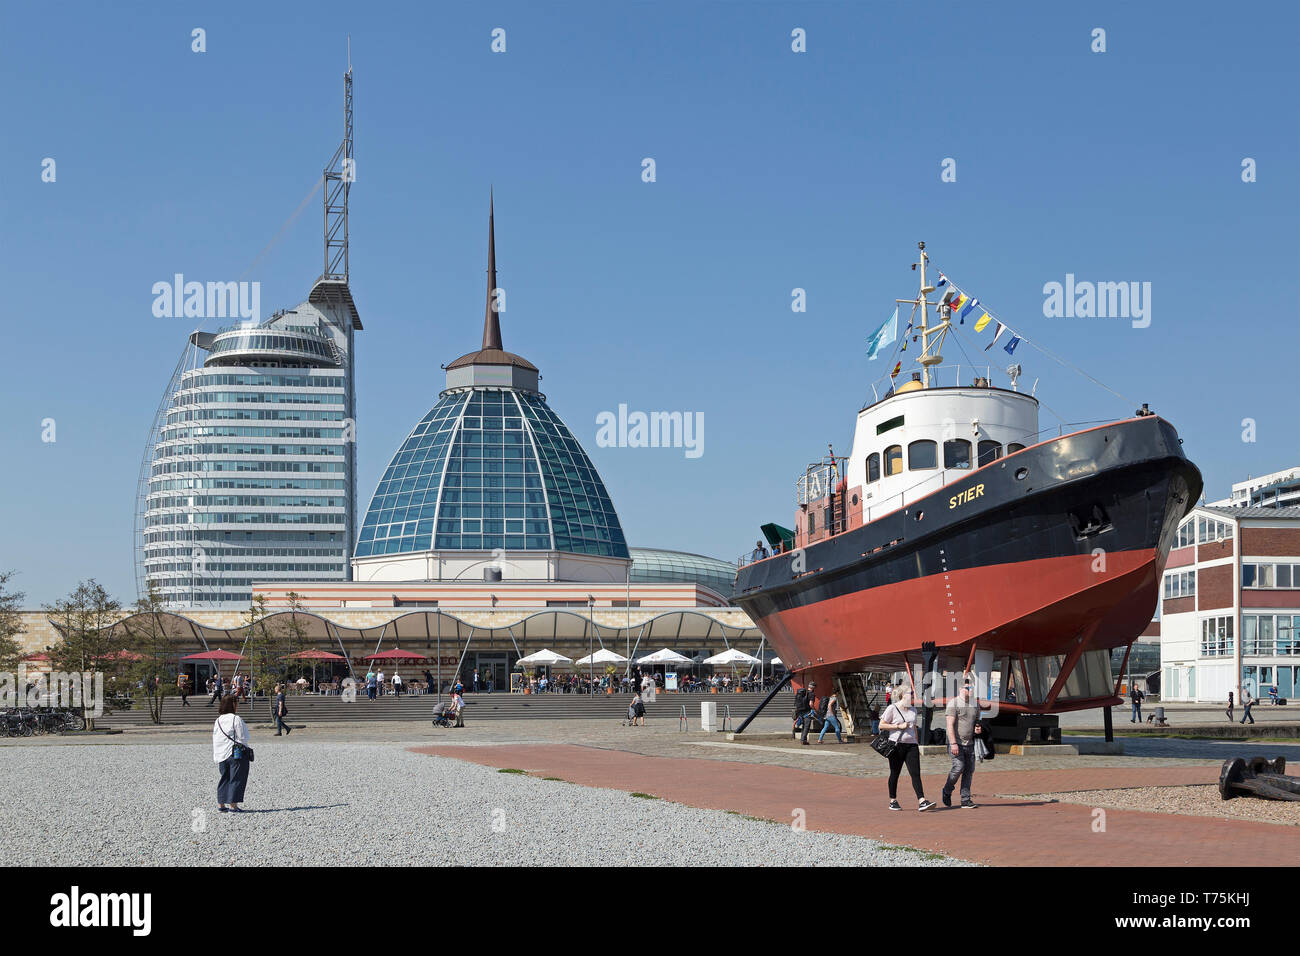 ATLANTIC Hotel Sail City, Mediterraneo and tugboat Stier at the museum-harbour, Bremerhaven, Bremen, Germany - Stock Image